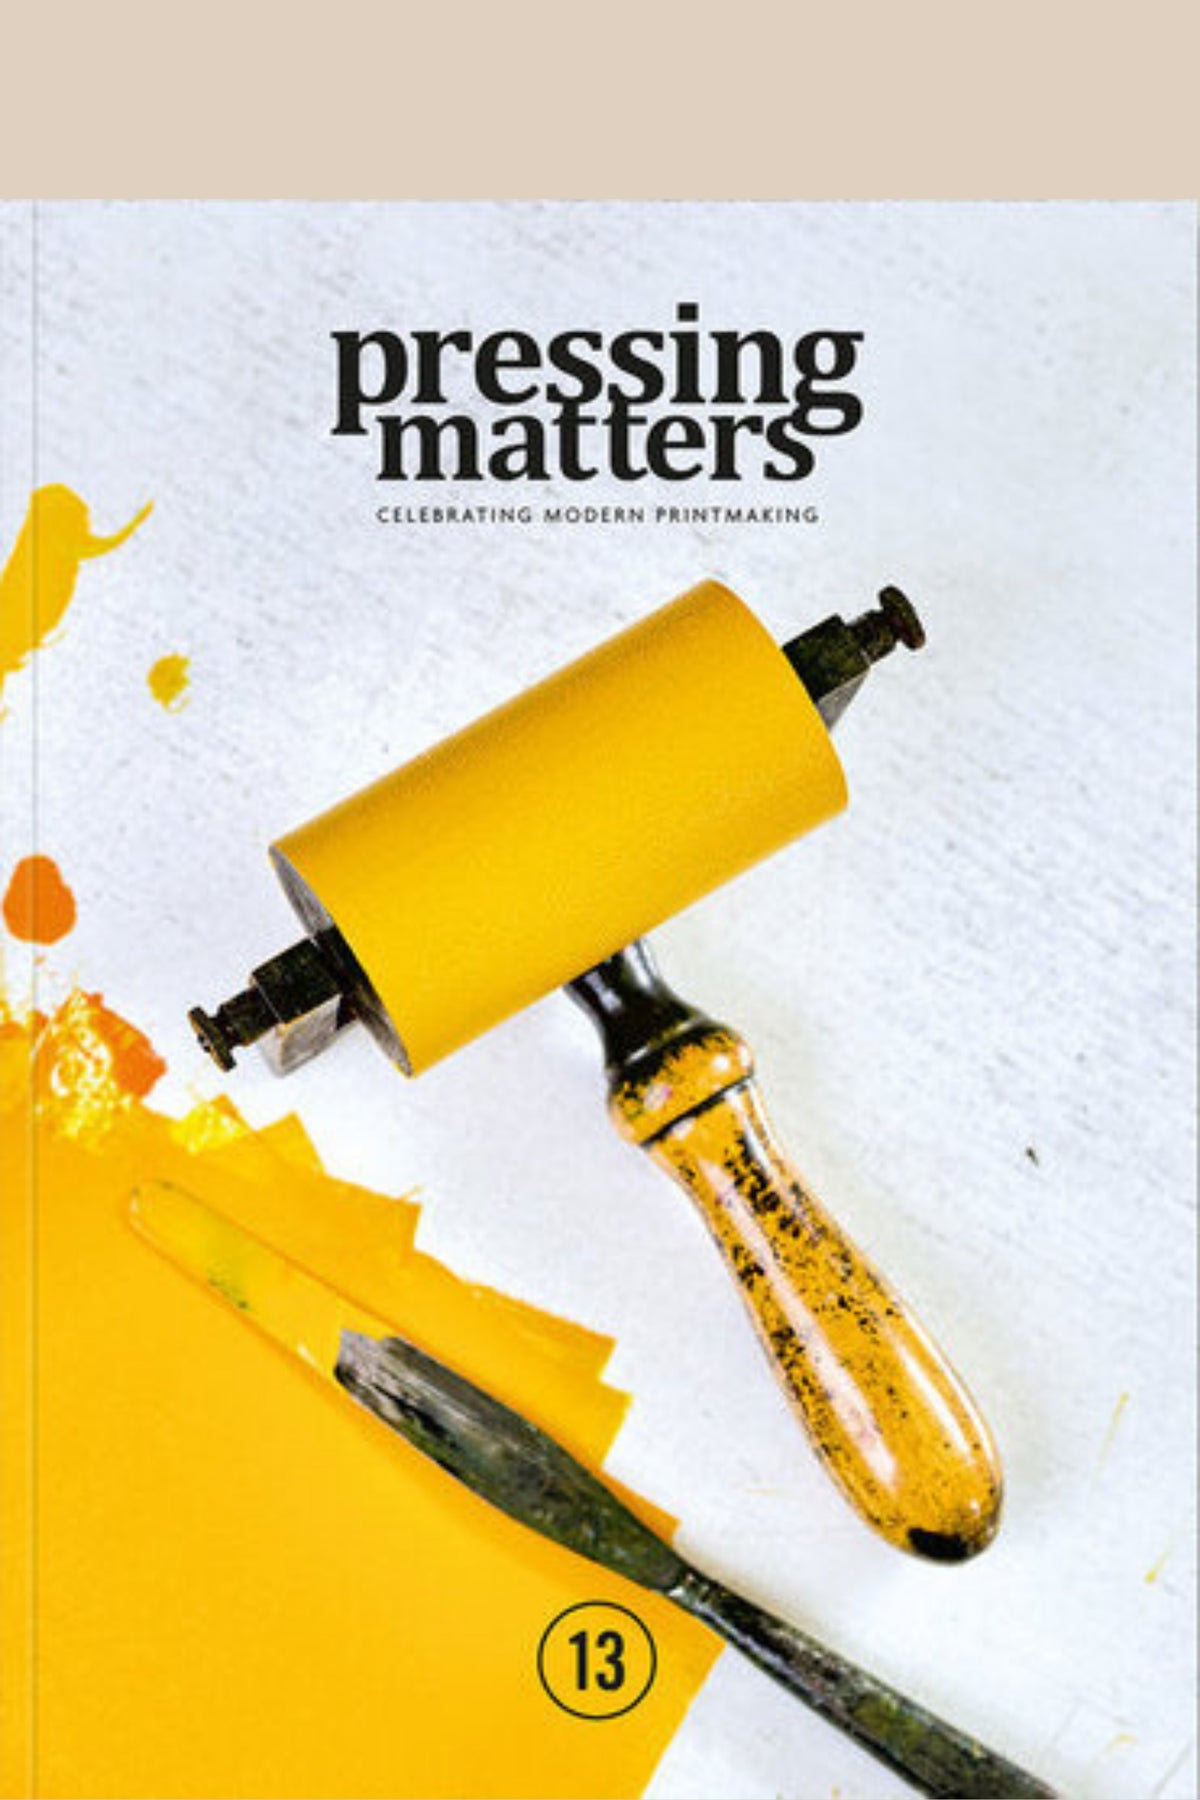 Pressing Matters Issue 13